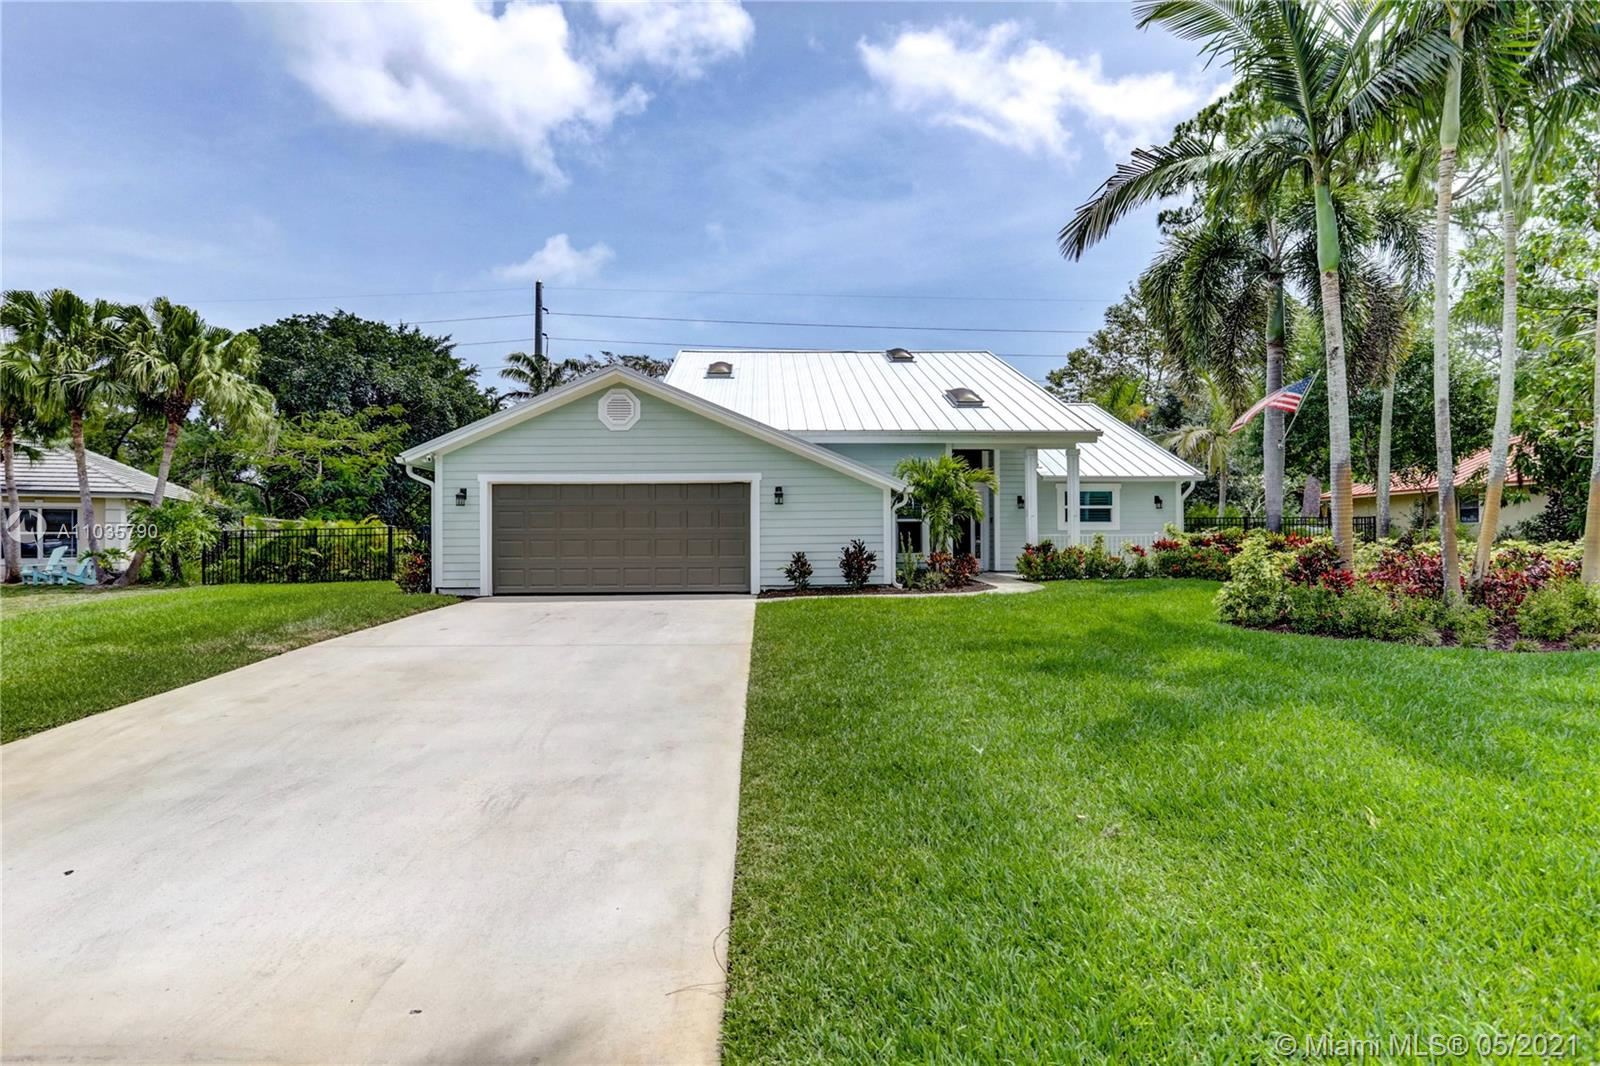 19518 Trails End Ter, Jupiter, FL 33458 - #: A11035790